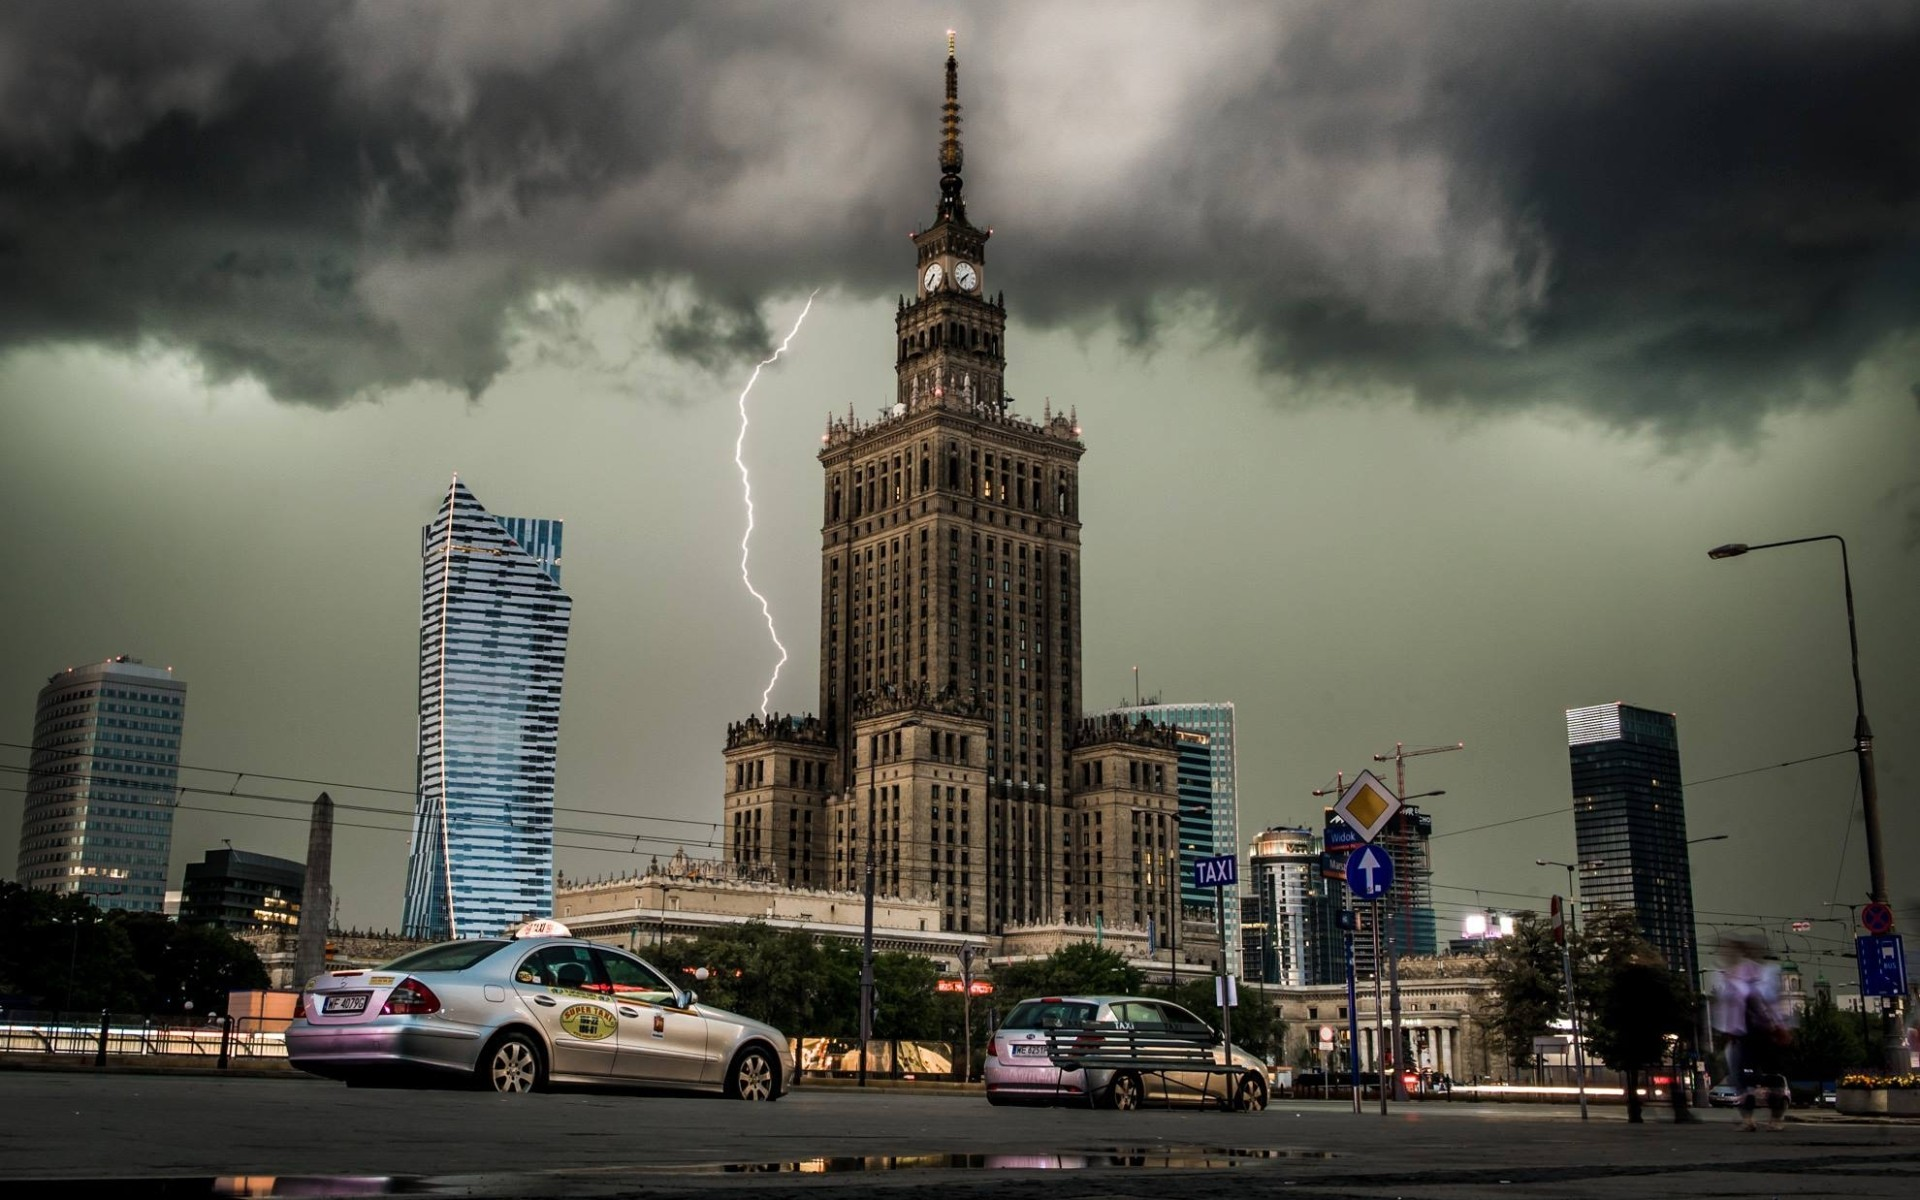 Cool 3d Car Wallpapers City Cityscape Clouds Lightning Building Architecture